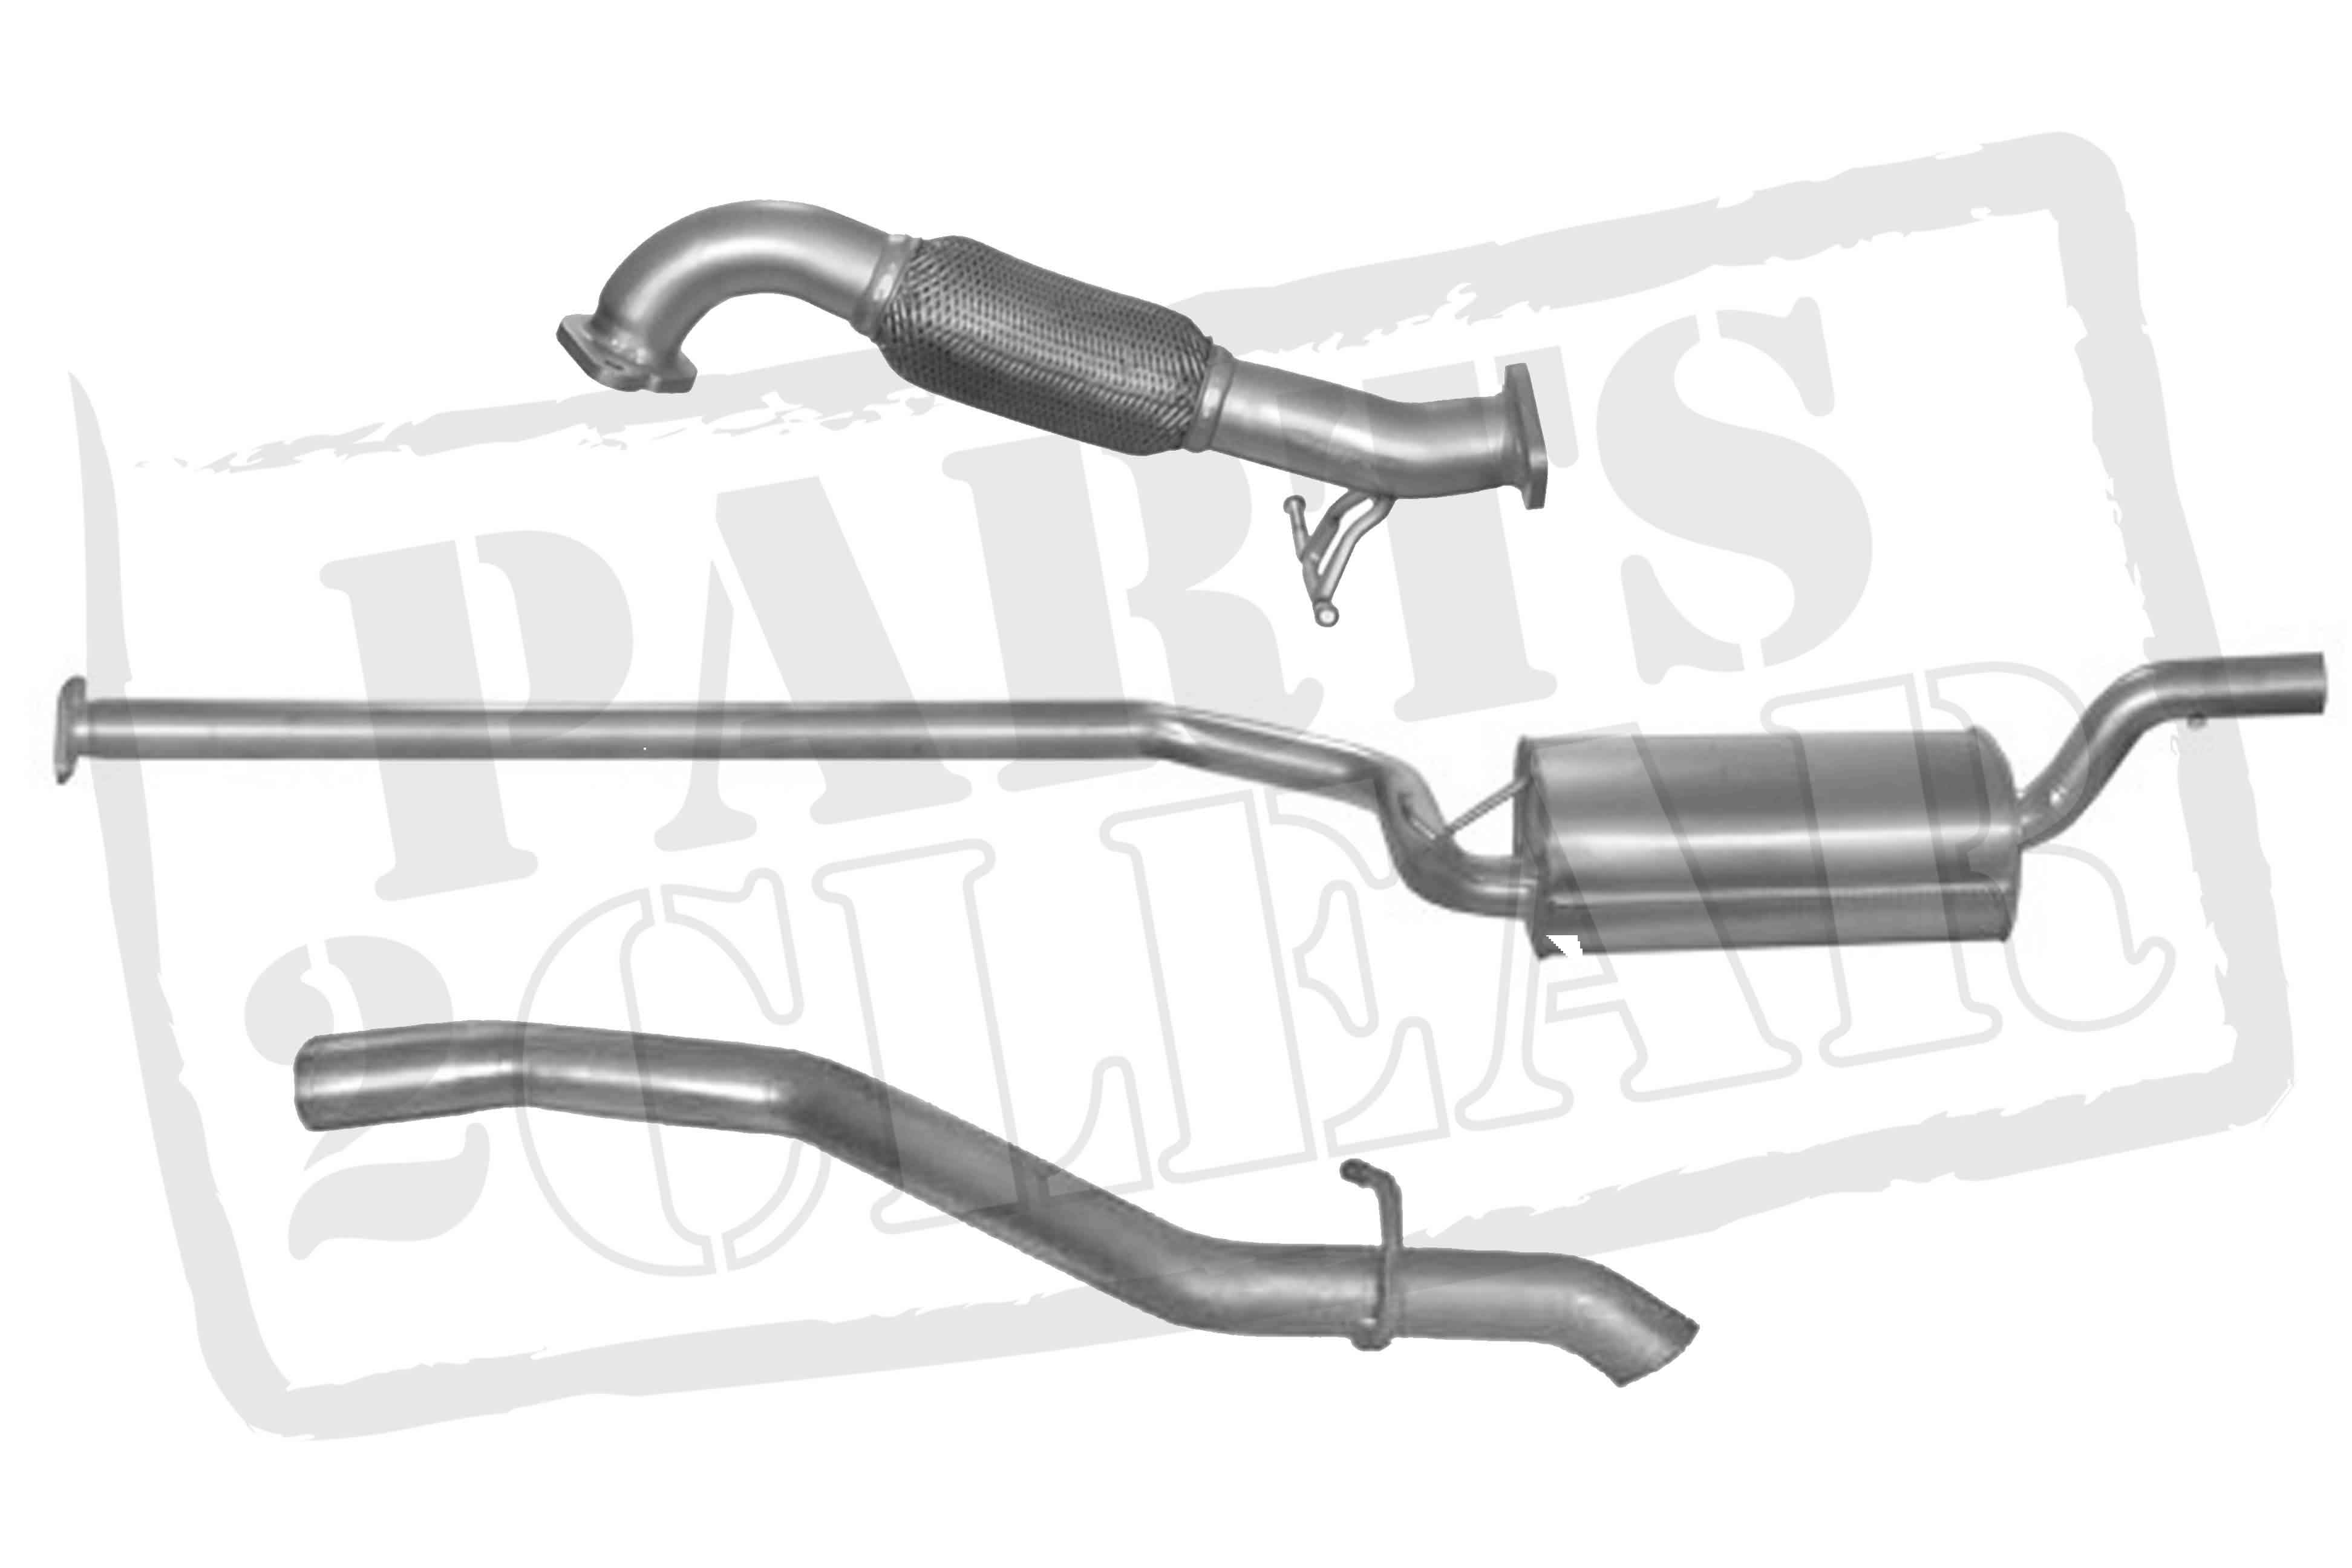 Ford Focus 1 6 Tdci Front Centre Rear Full Exhaust System